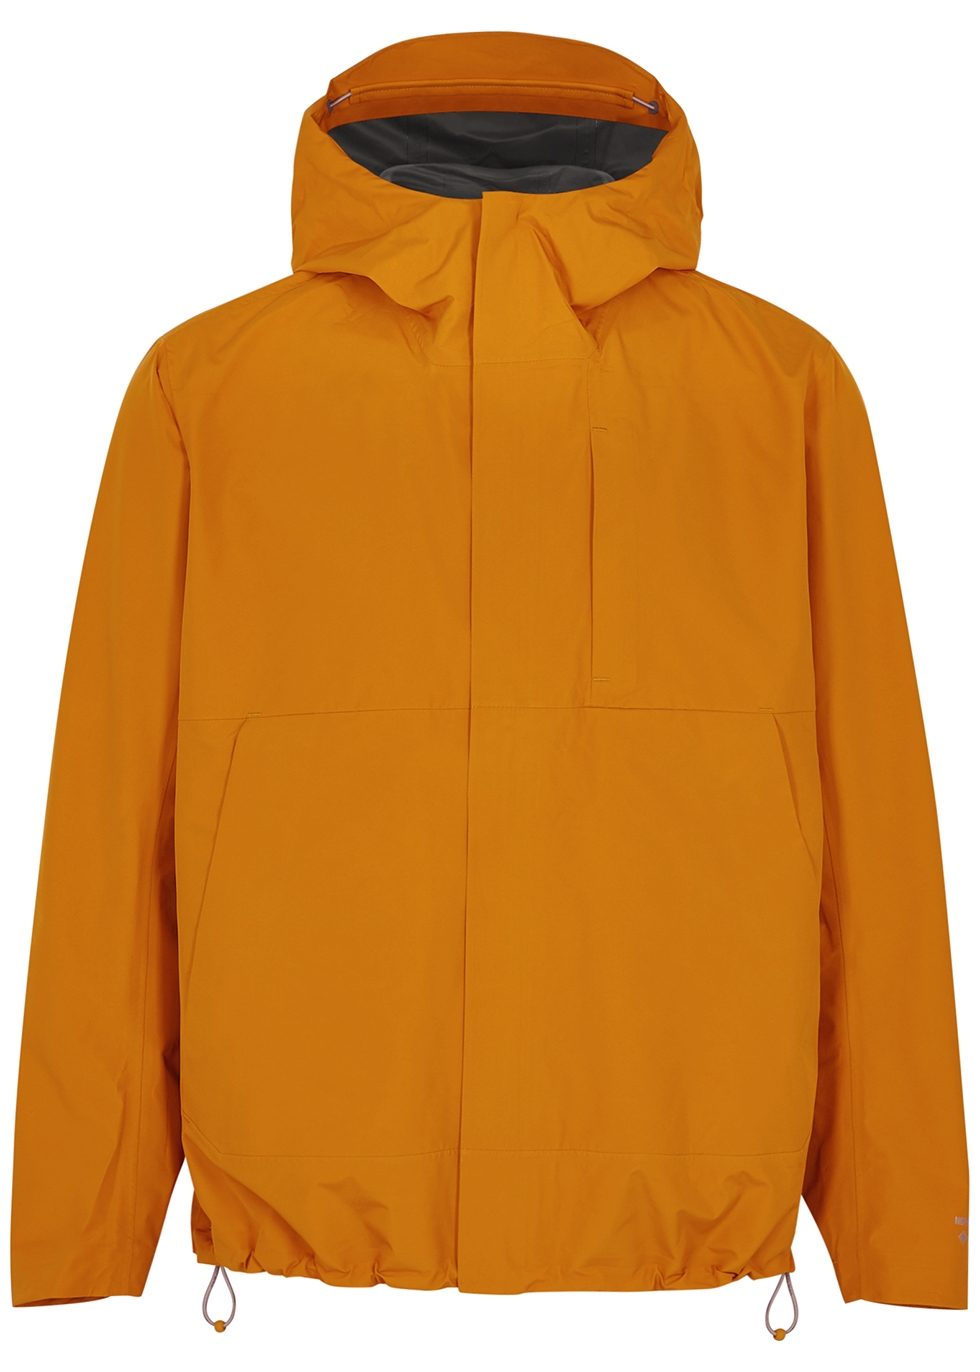 Fyn orange Gore-Tex jacket